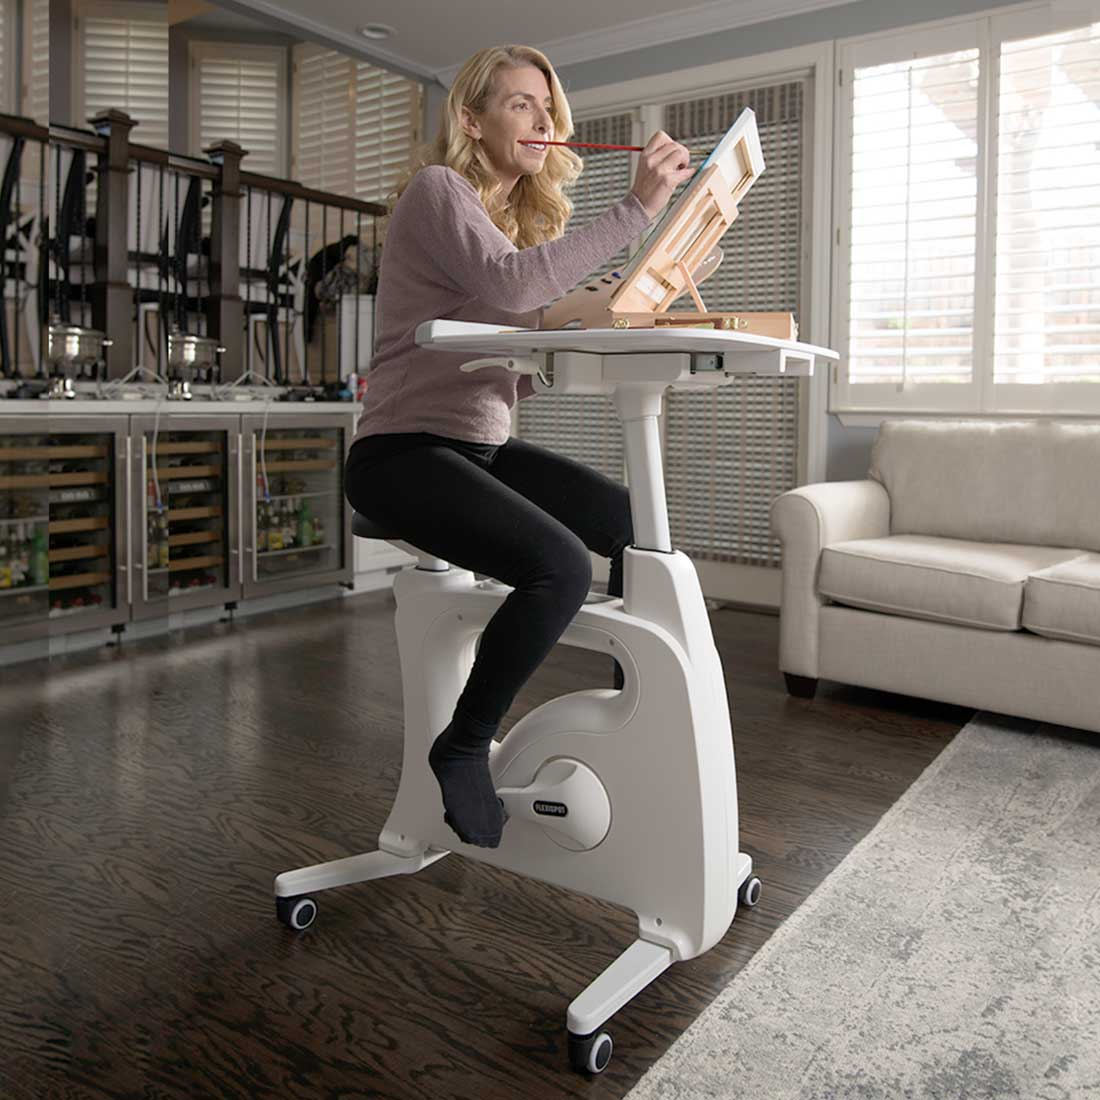 A bicycle desk!